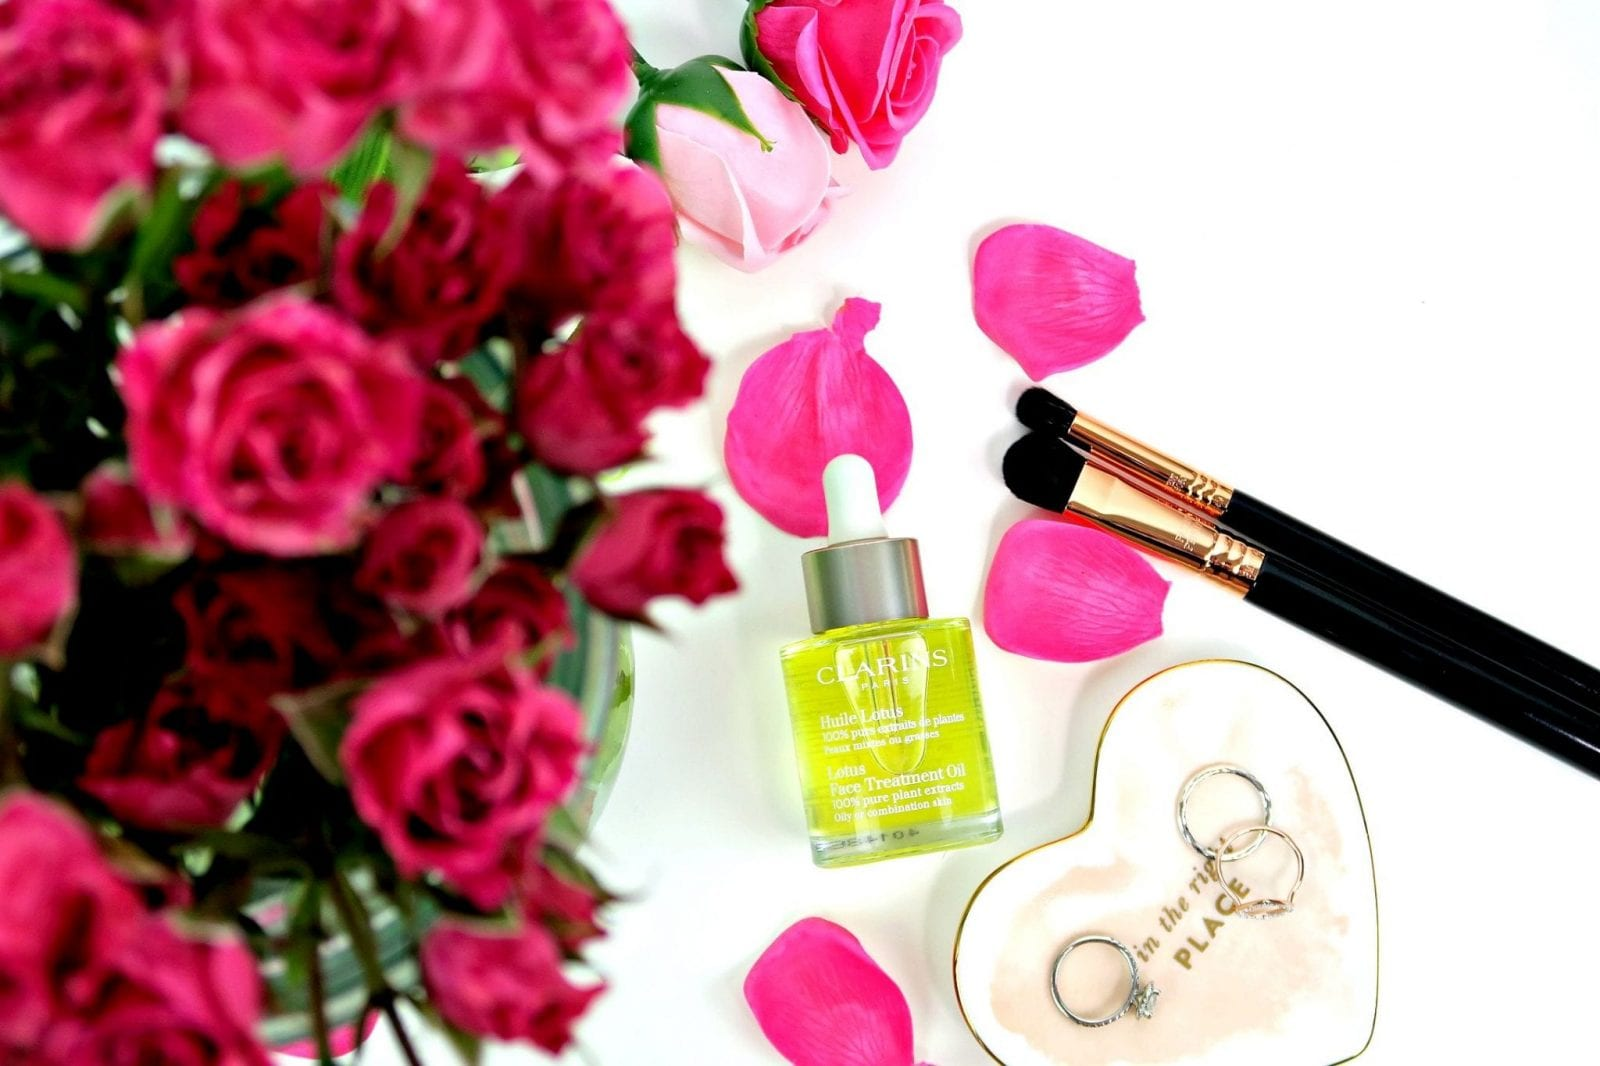 This is a flat lay shot of my pink roses, Clarins Lotus Oil and some other gorgeous details.